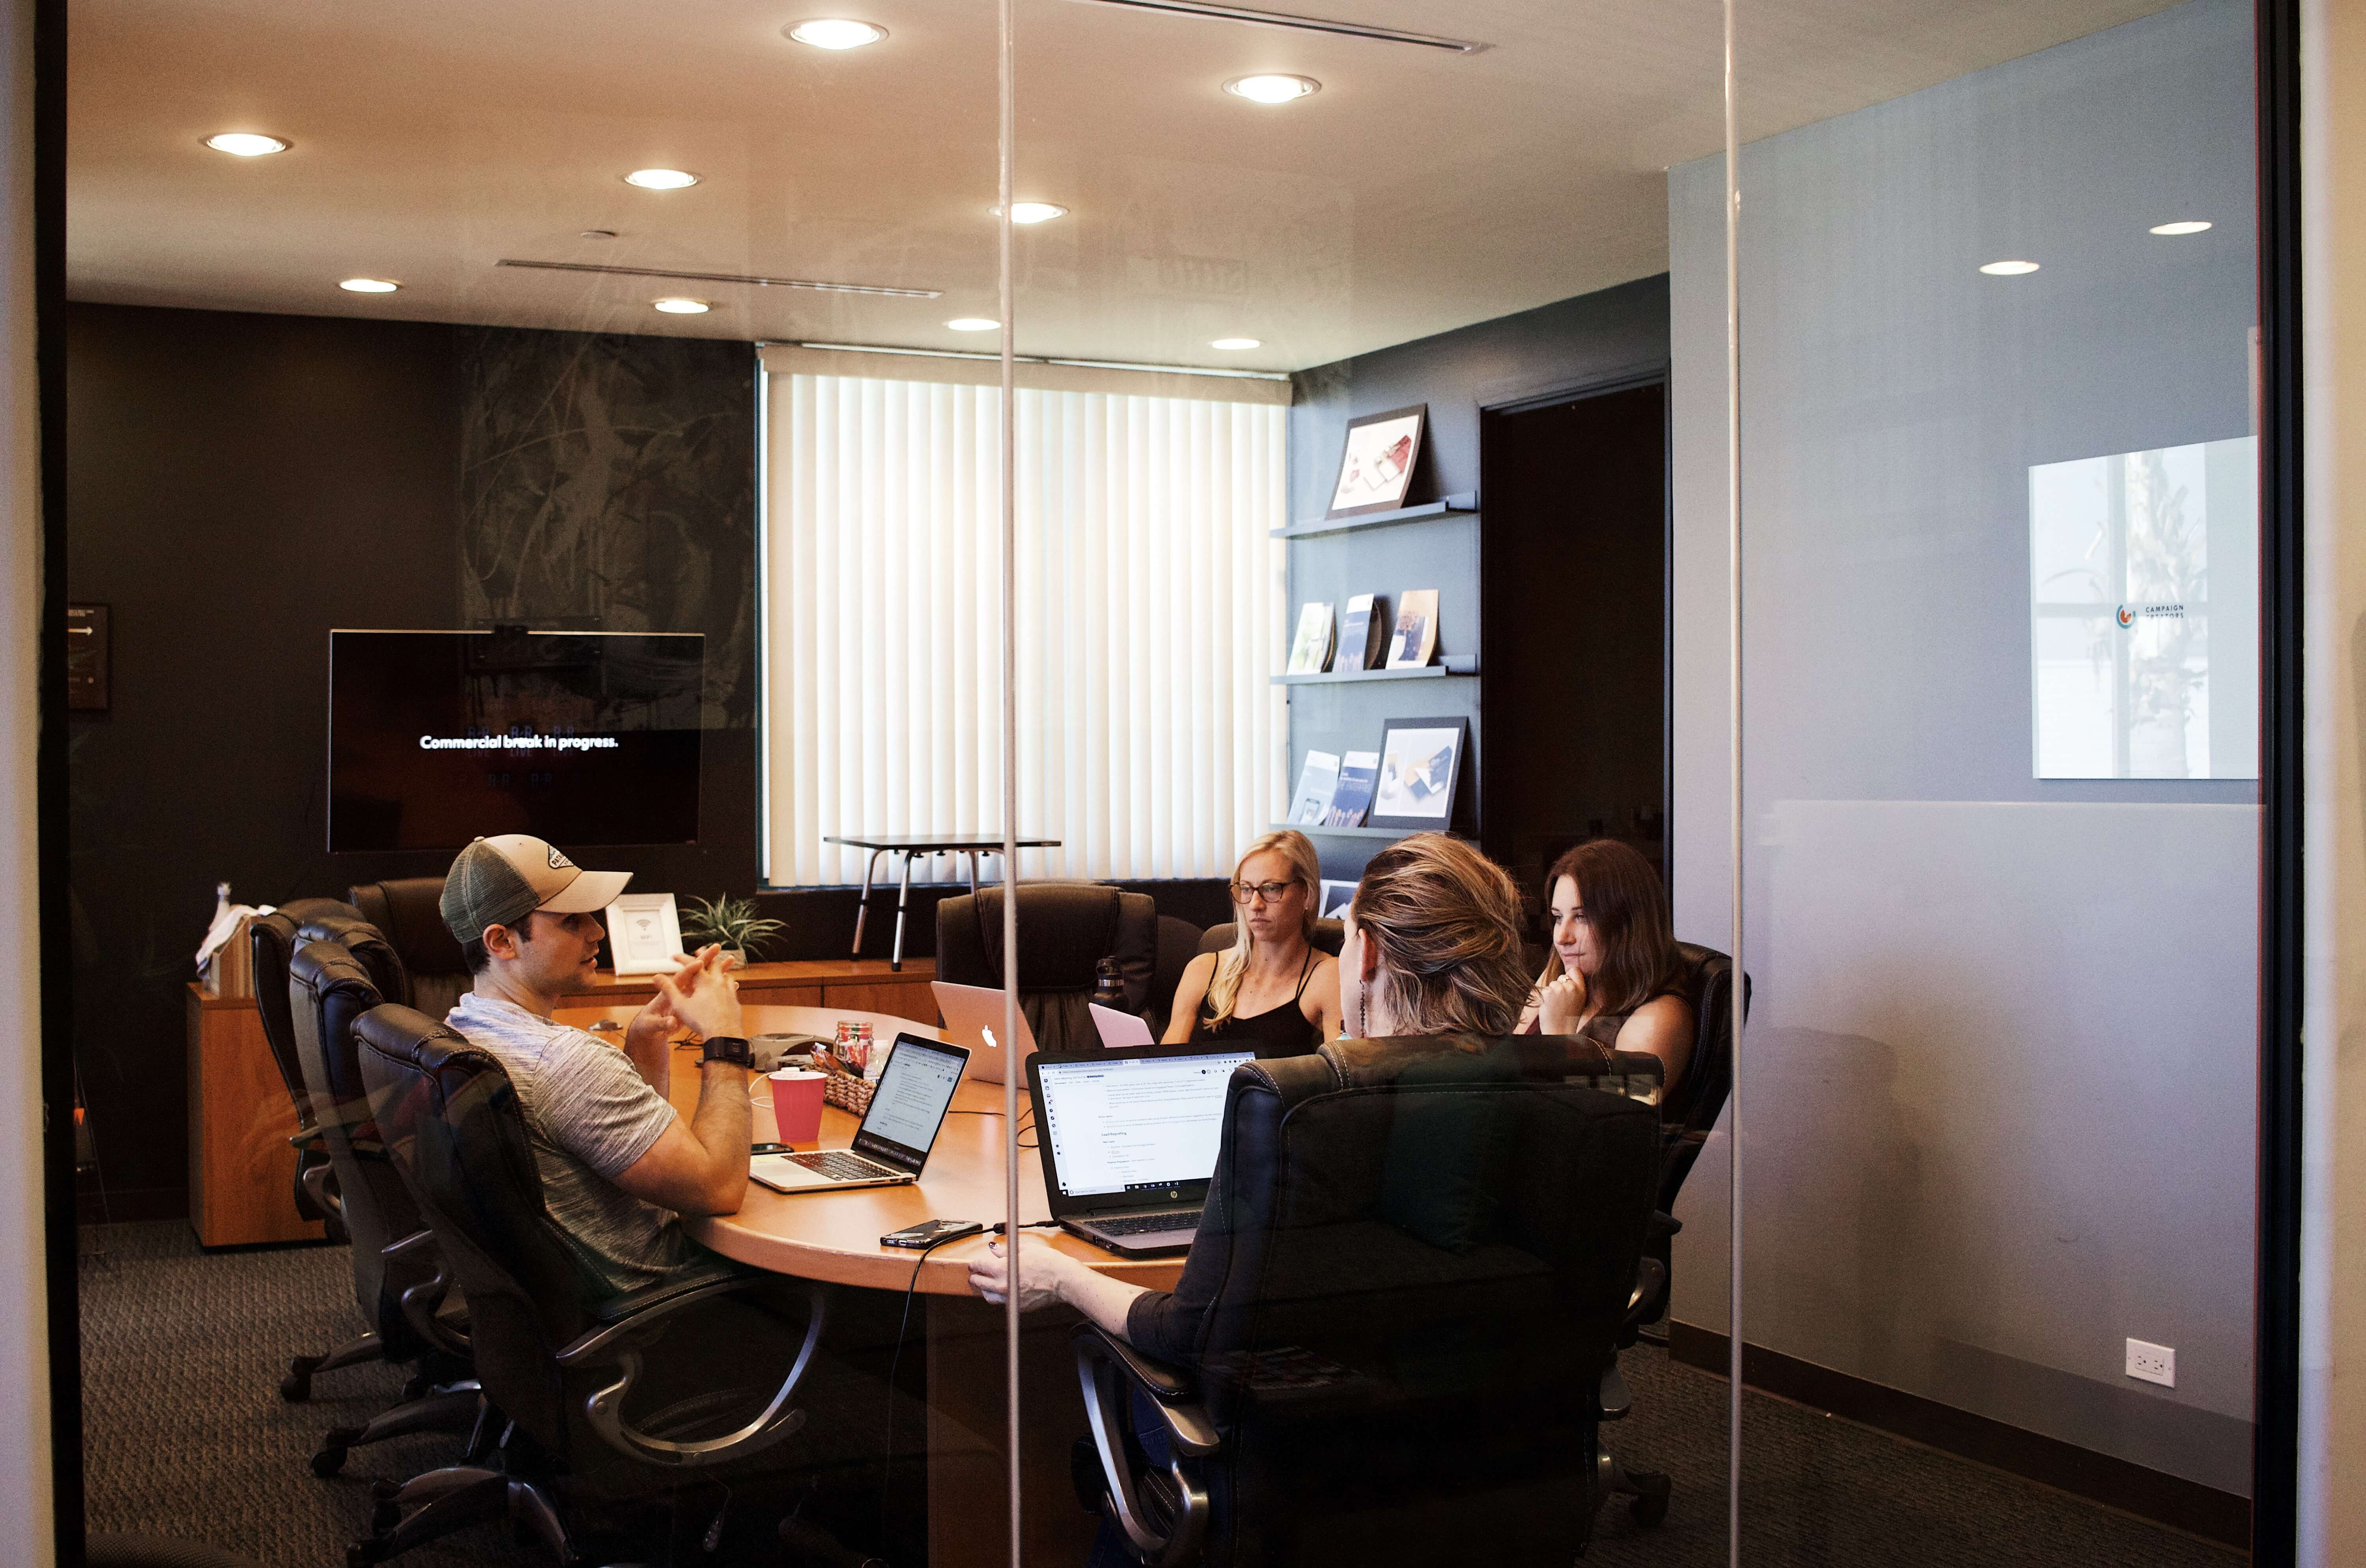 audio-visual-conference-room-with-glass-walls